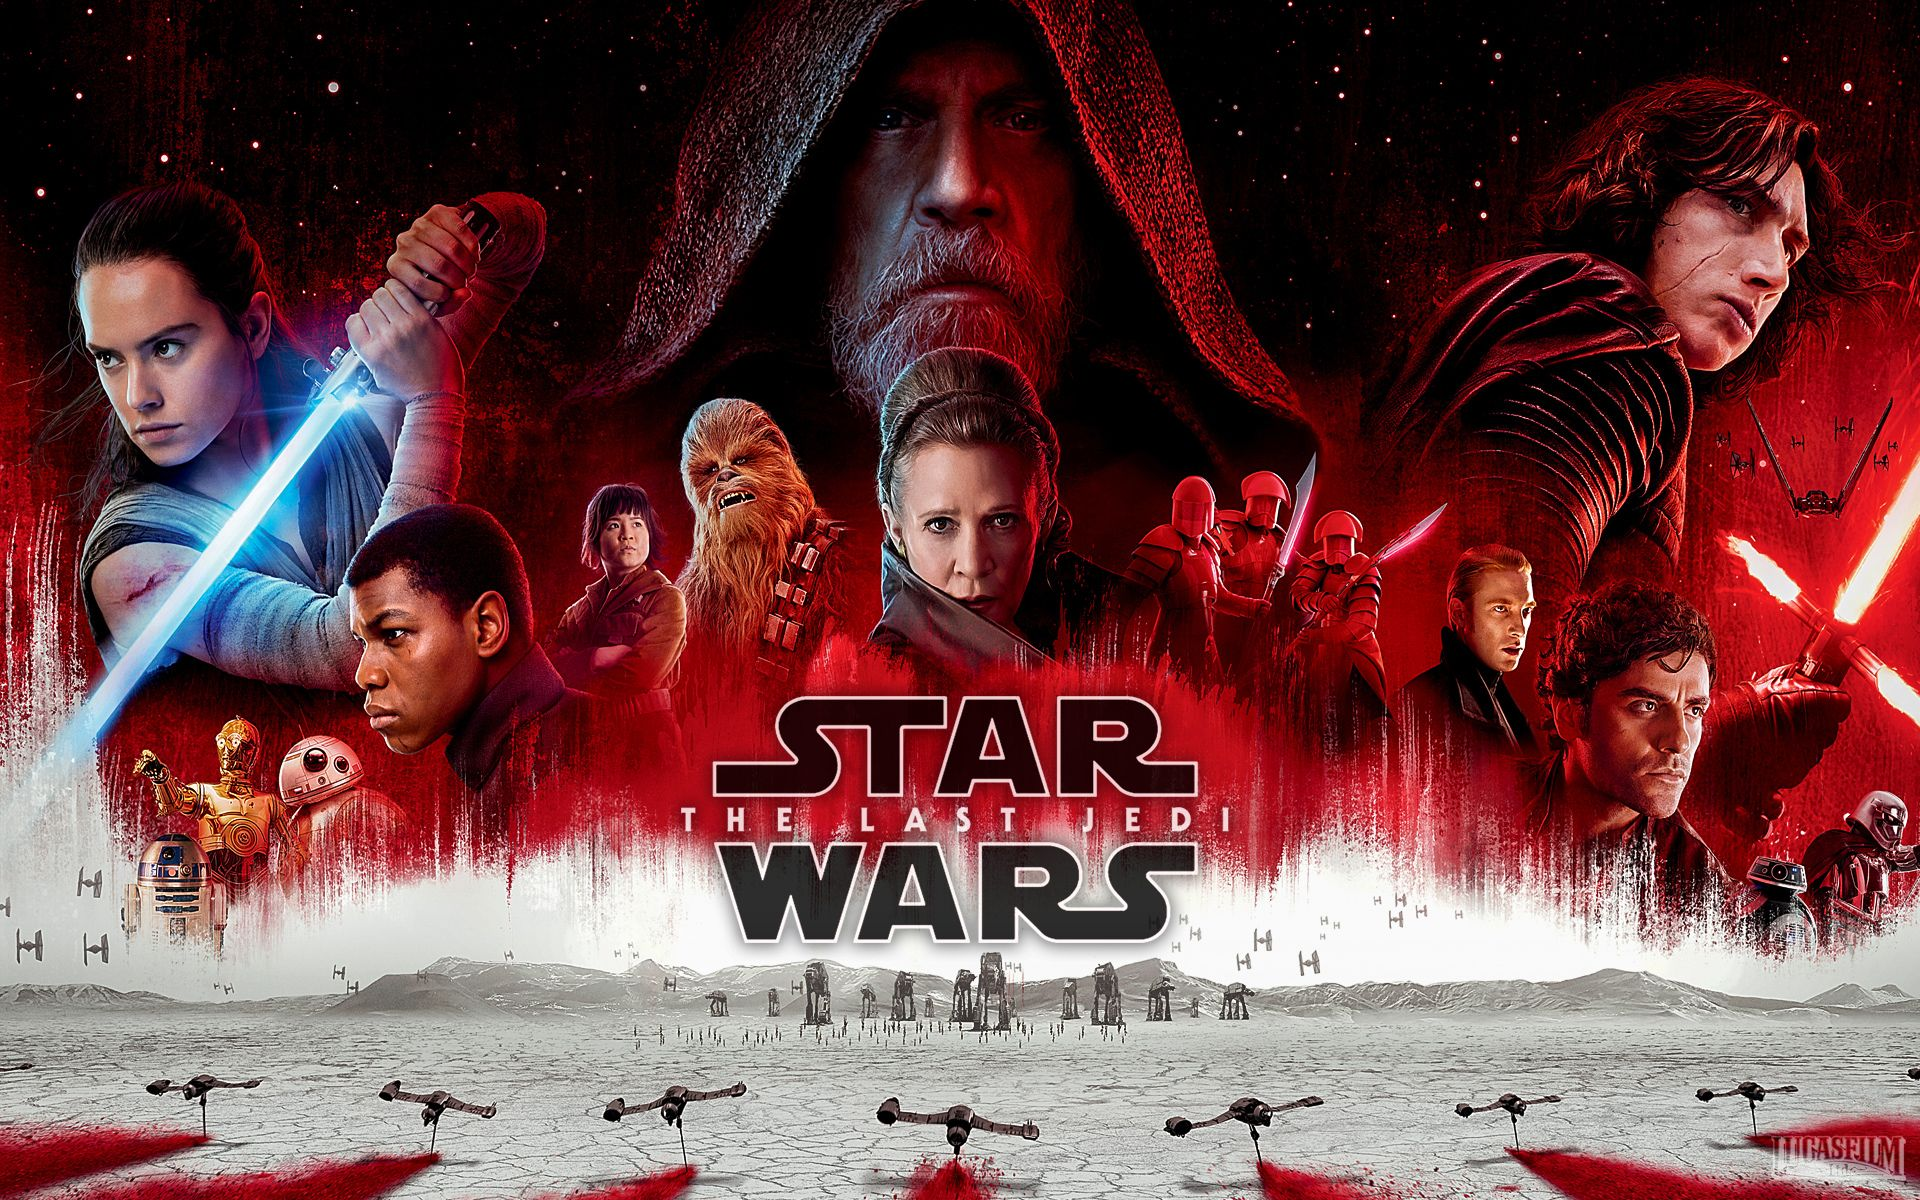 The poster of Star Wars: The Last Jedi, which is a film we have provided our rigging services to.